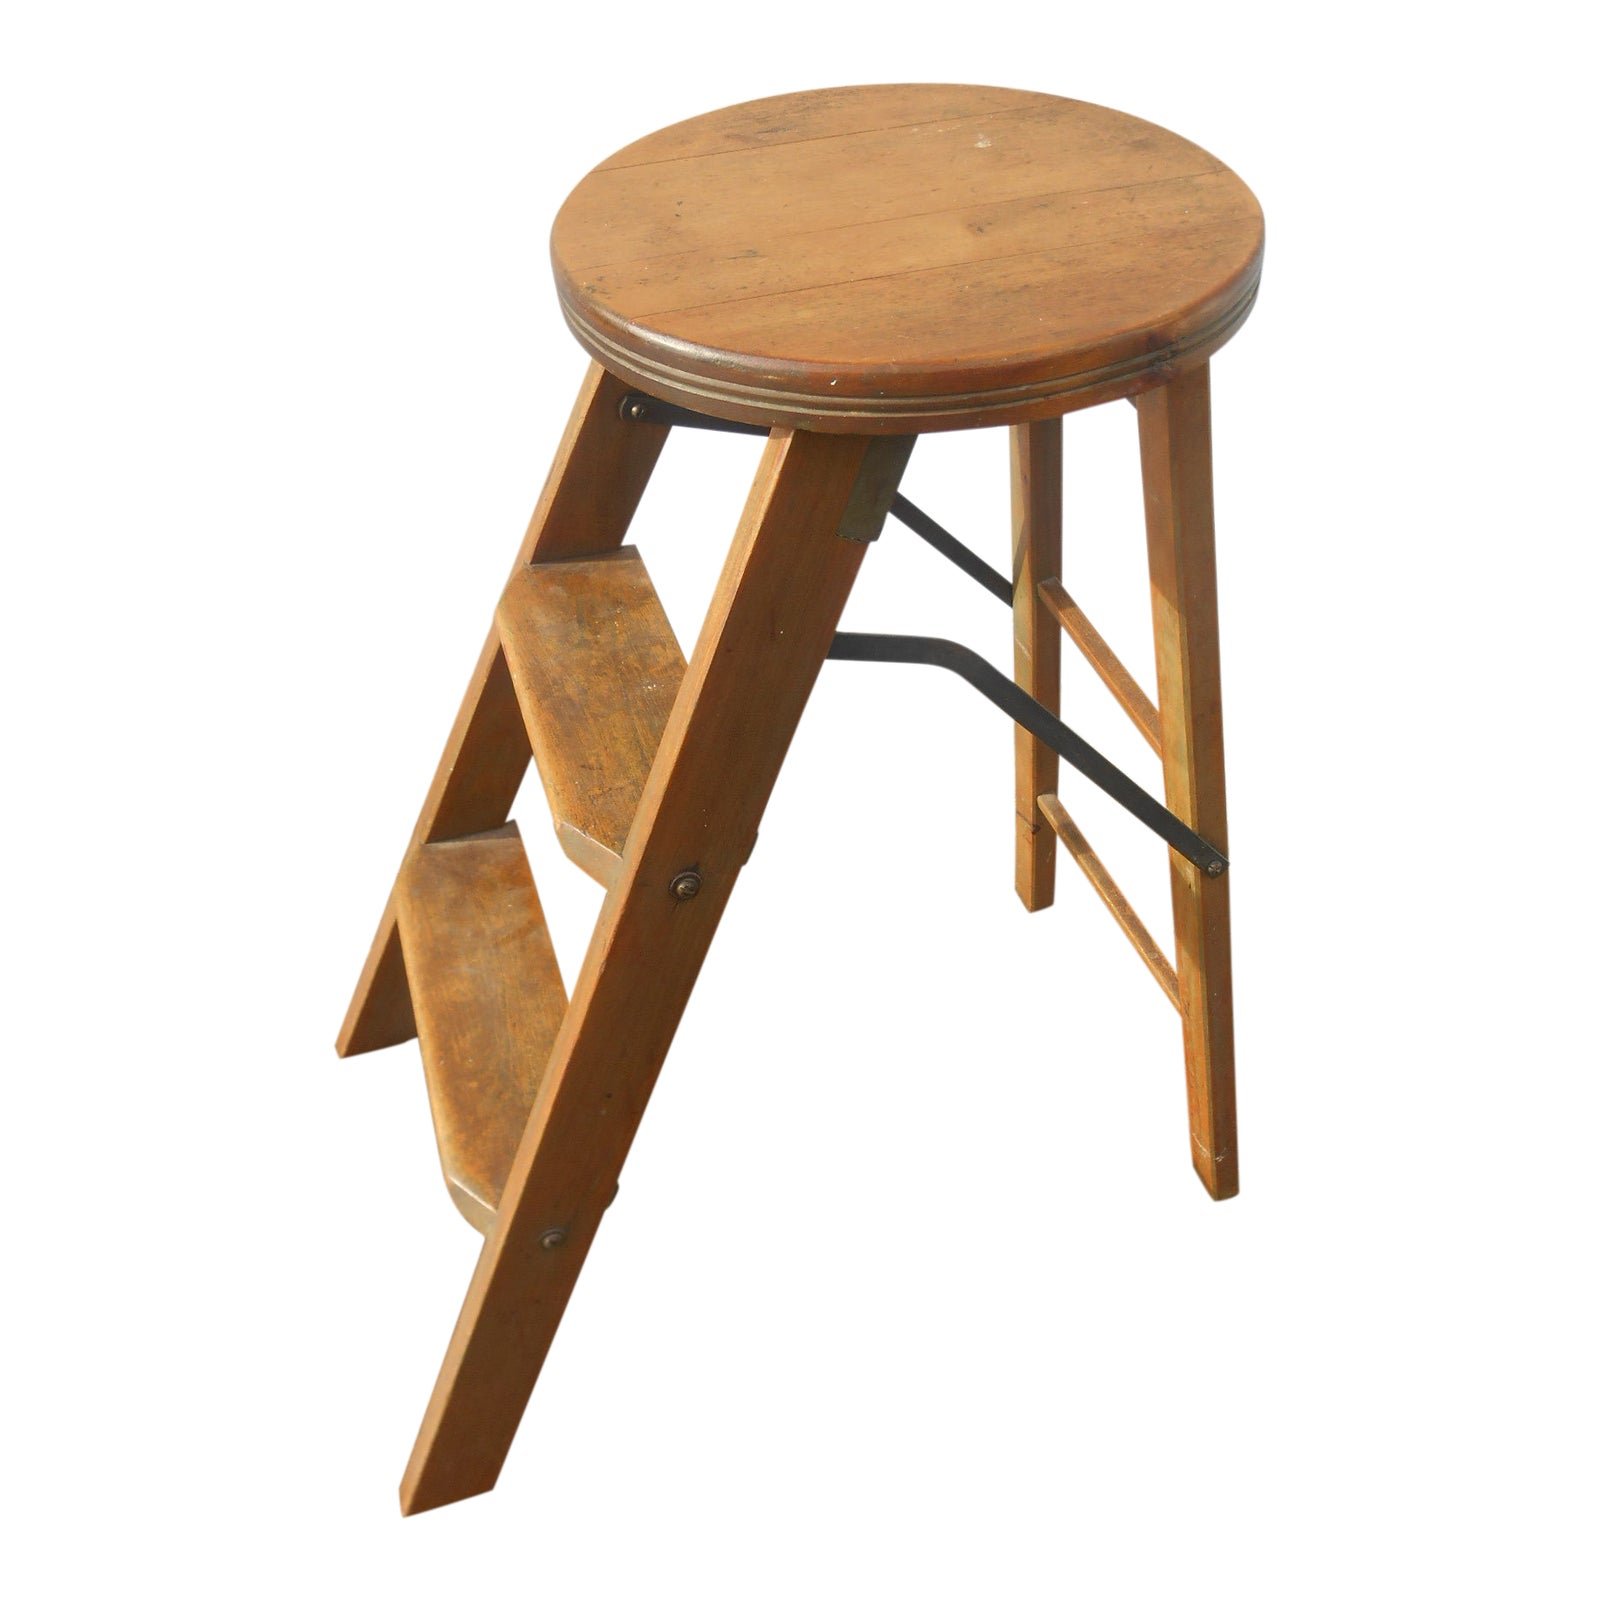 Super 1910S Antique Folding Library Step Stool Gmtry Best Dining Table And Chair Ideas Images Gmtryco